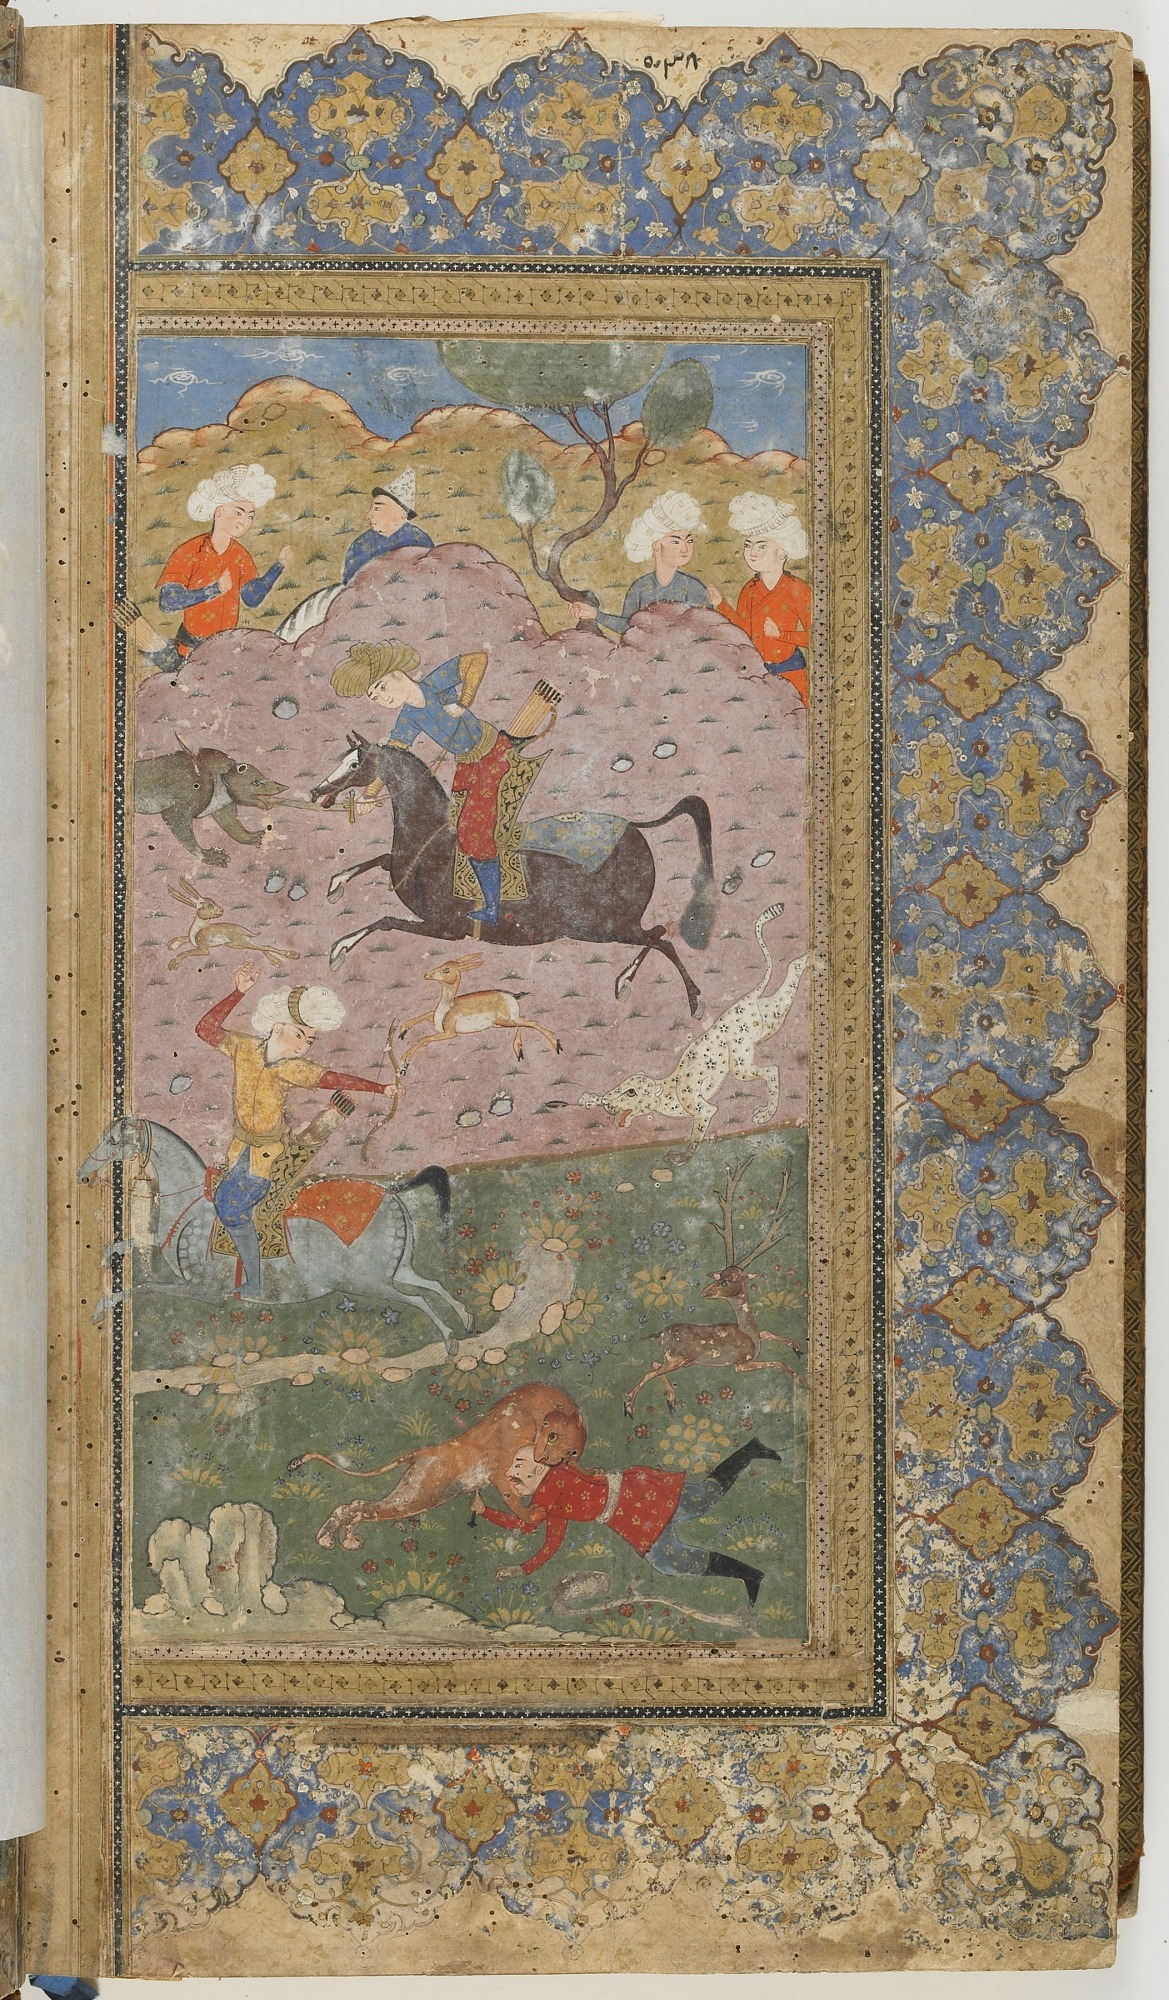 folio 539 verso: The Shahnama (Book of kings) by Firdausi (d. 1020)